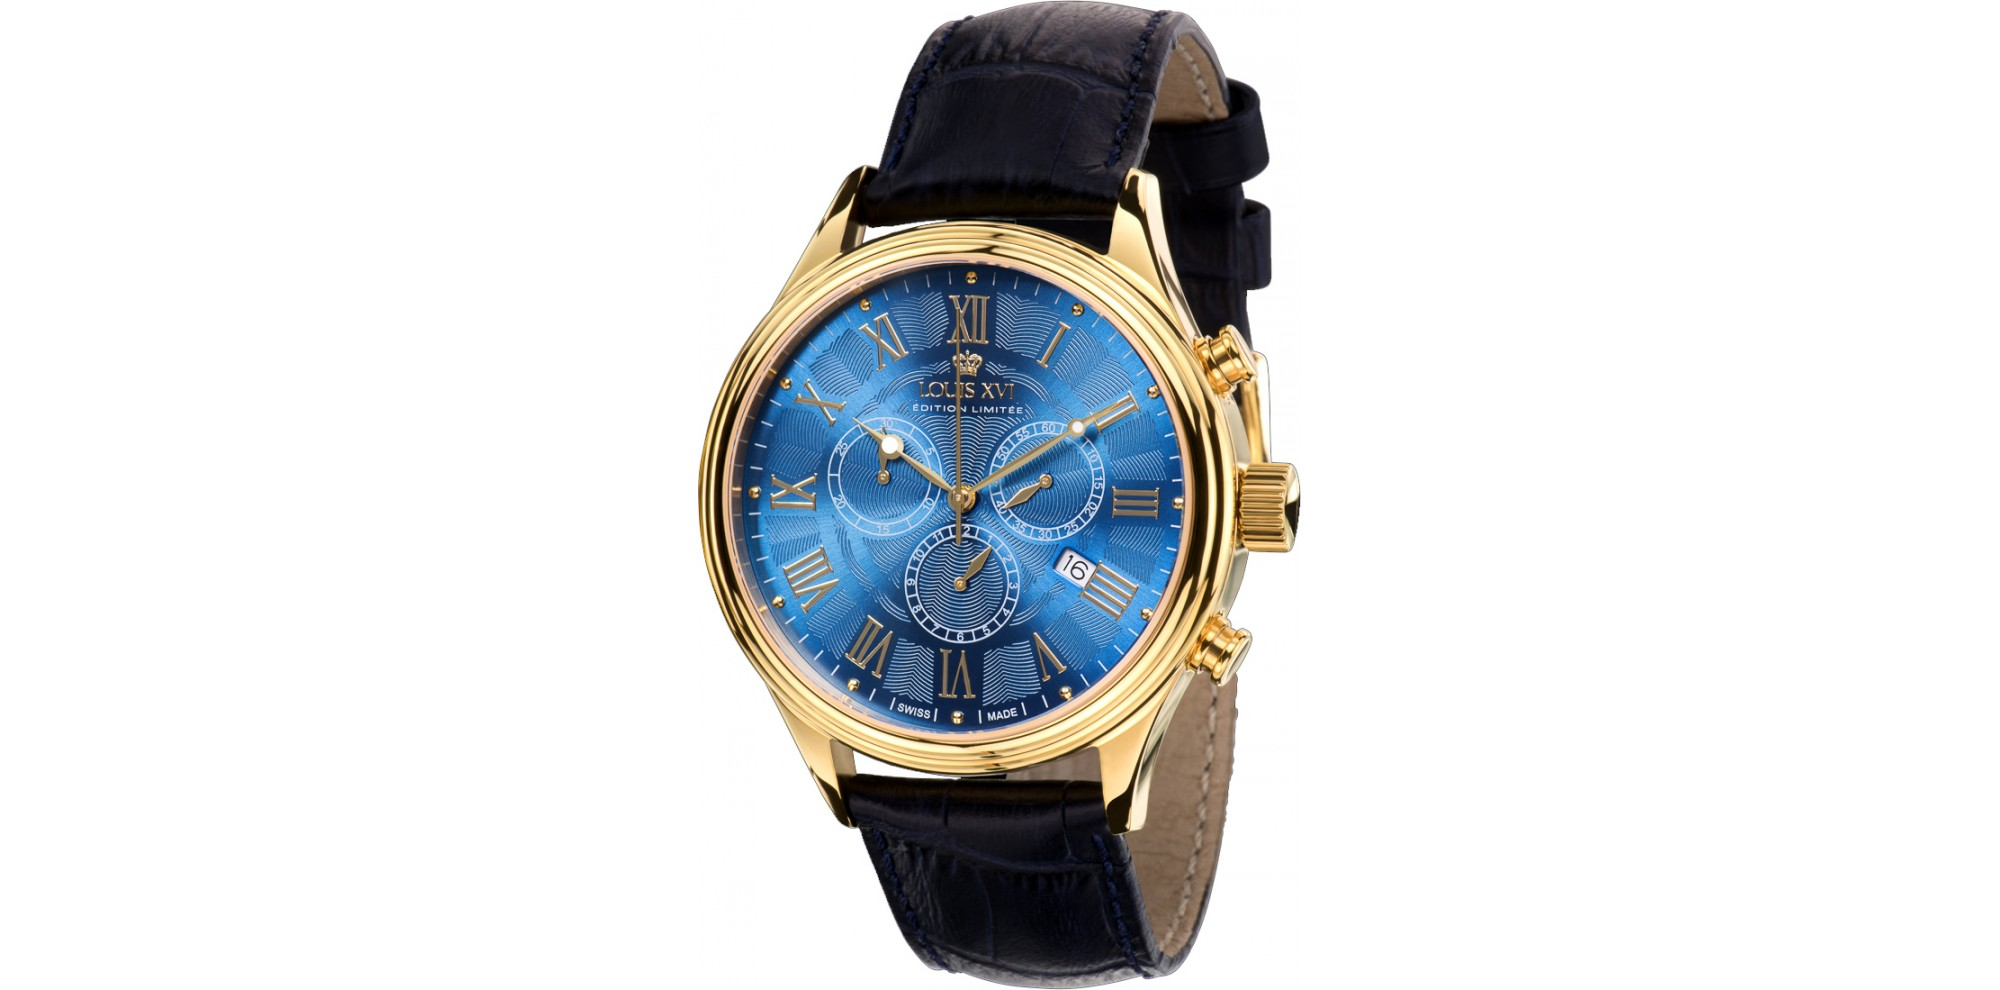 DANTON l'or bleu Chronographe Swiss Made